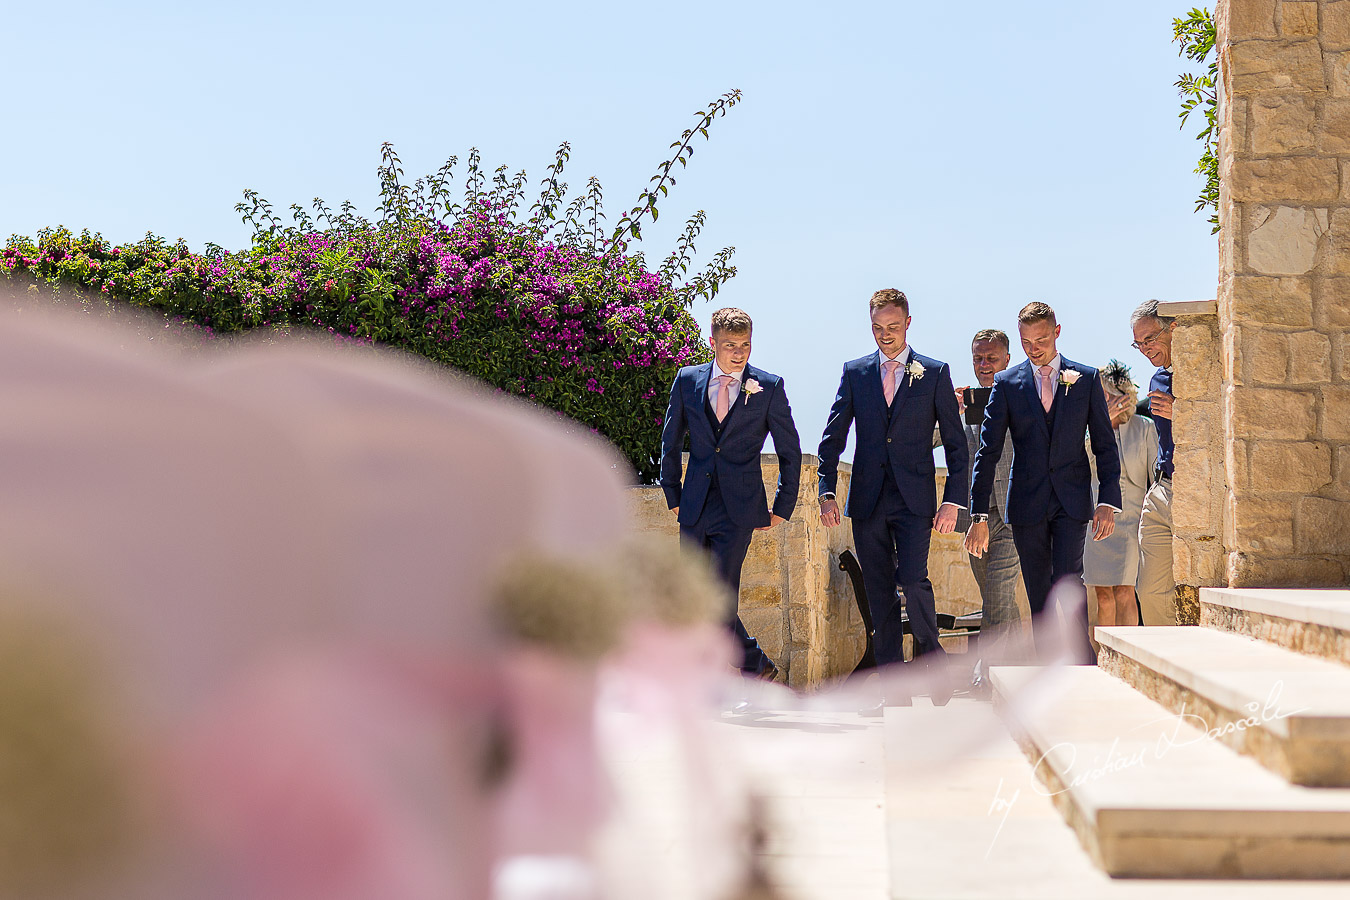 The moment when the groom arrives at the wedding ceremony captured at Aphrodite Hills Resort in Cyprus by photographer Cristian Dascalu.